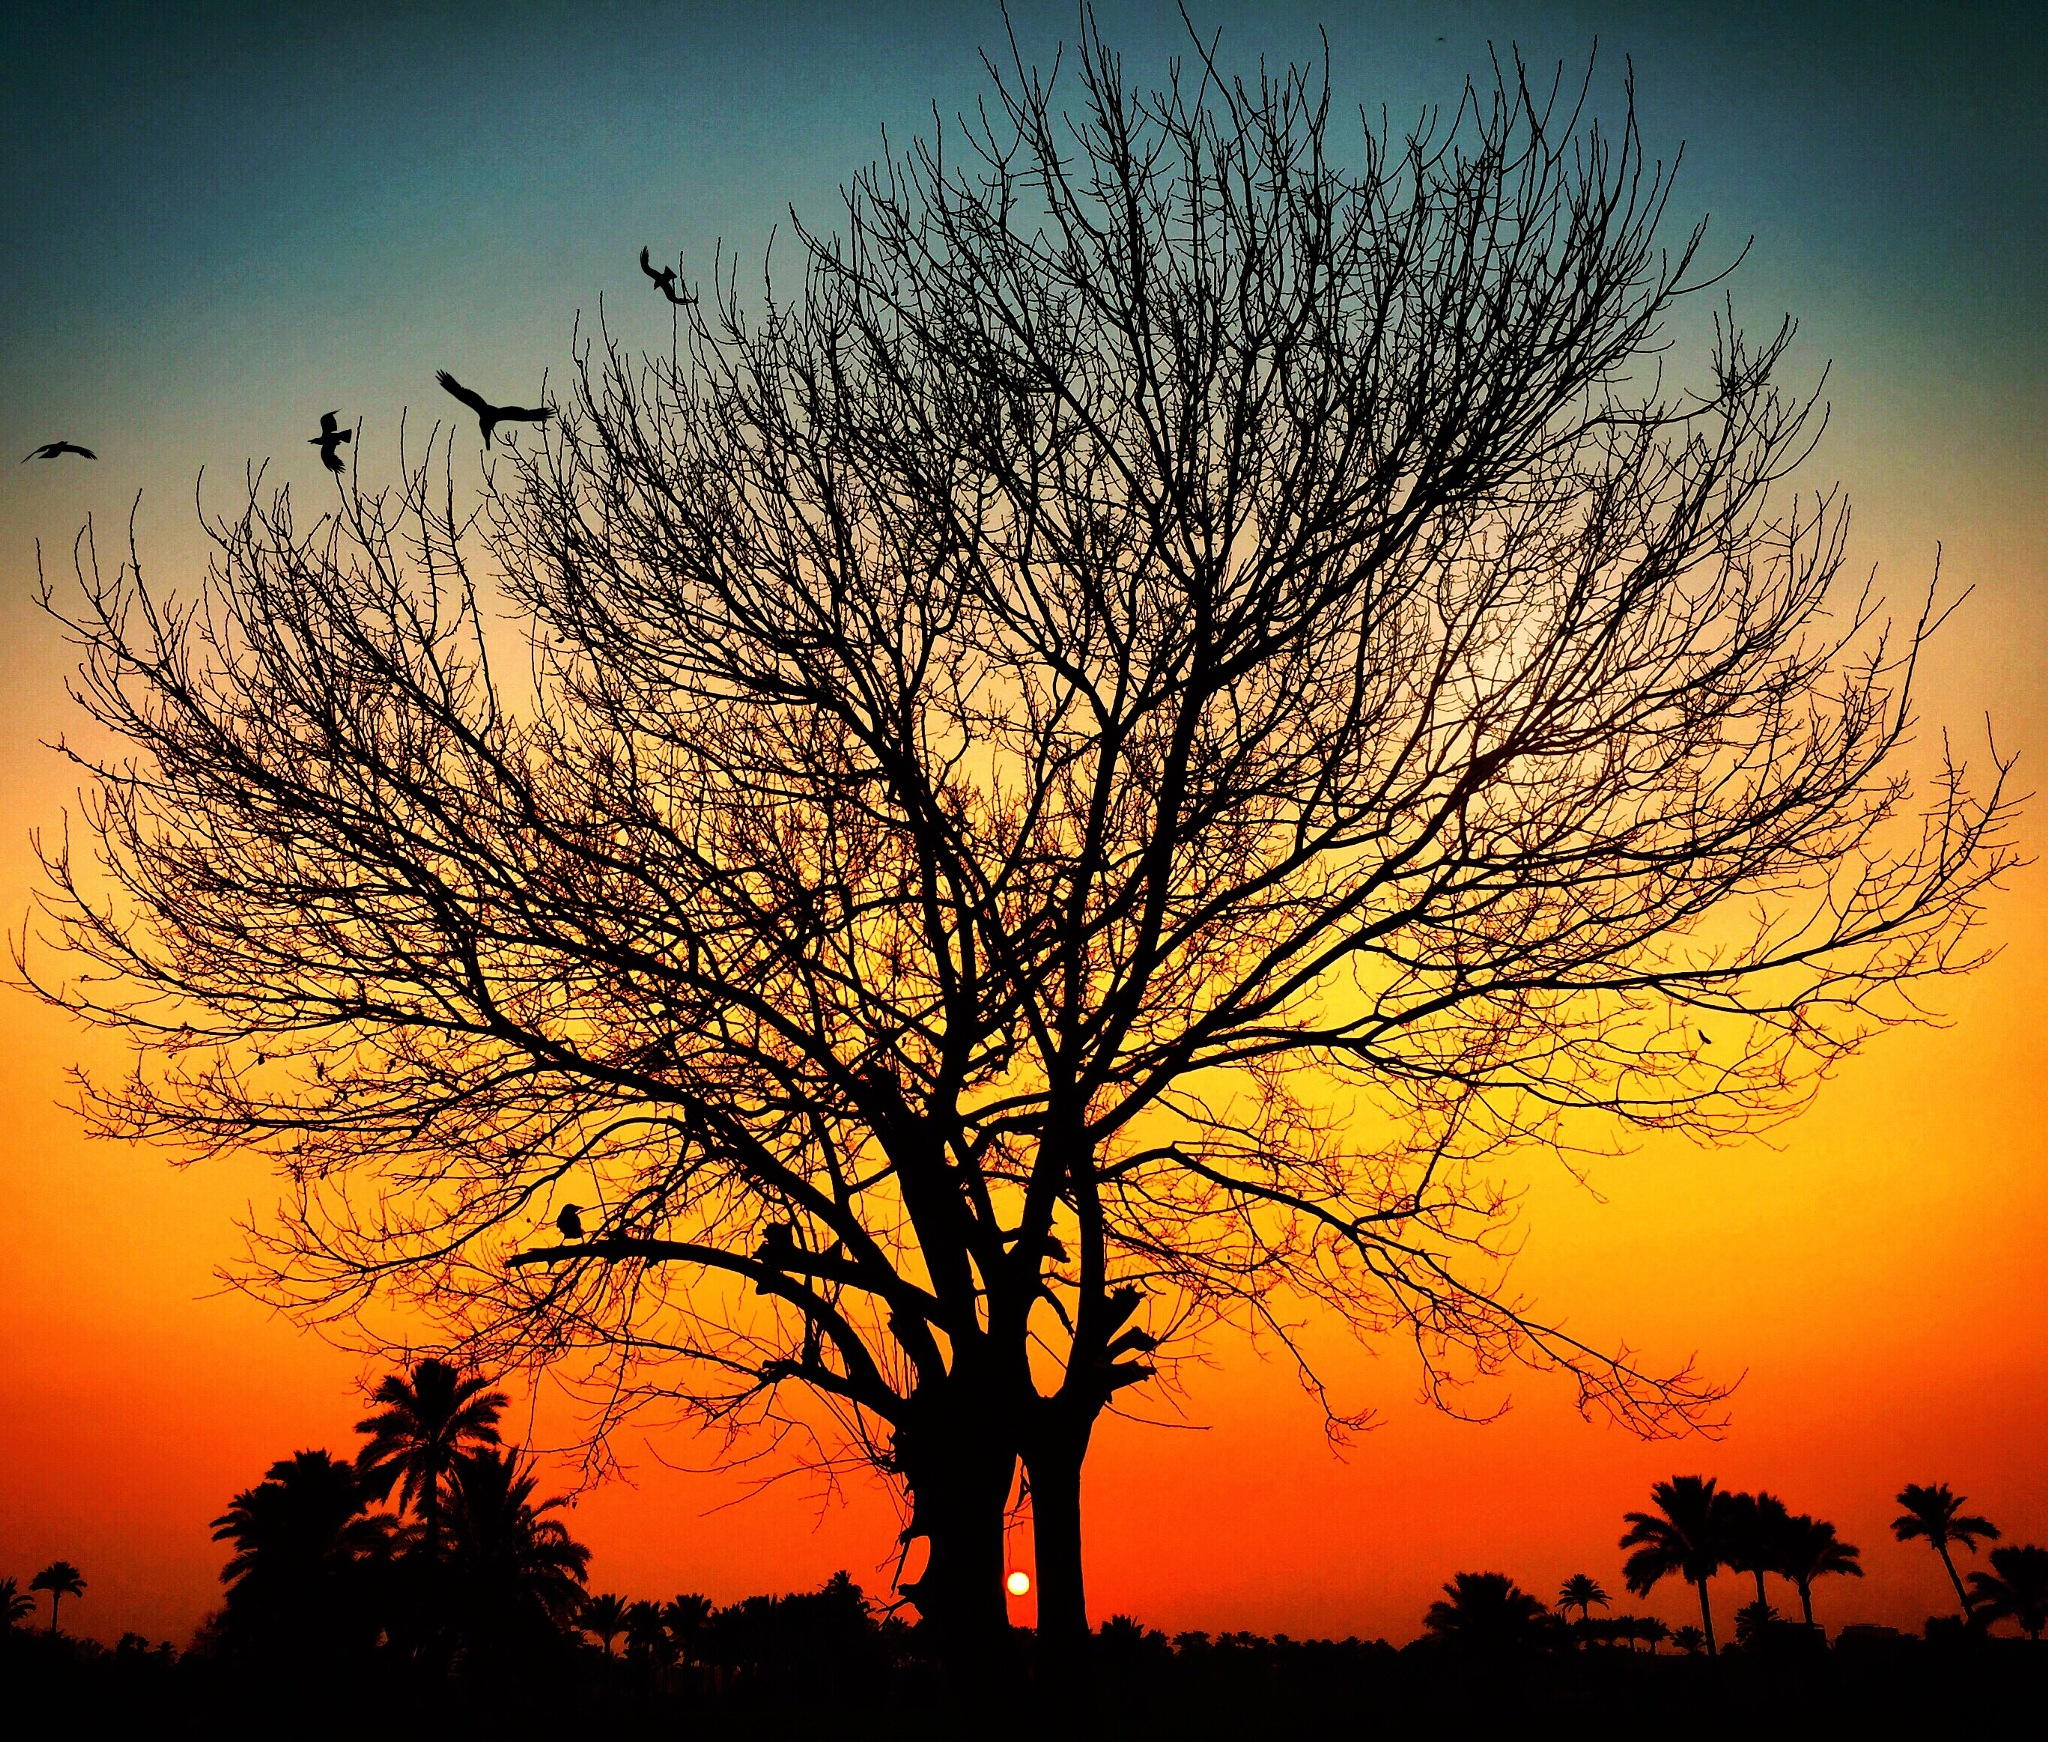 Sun in the middle of the tree by Abdullah Kamel